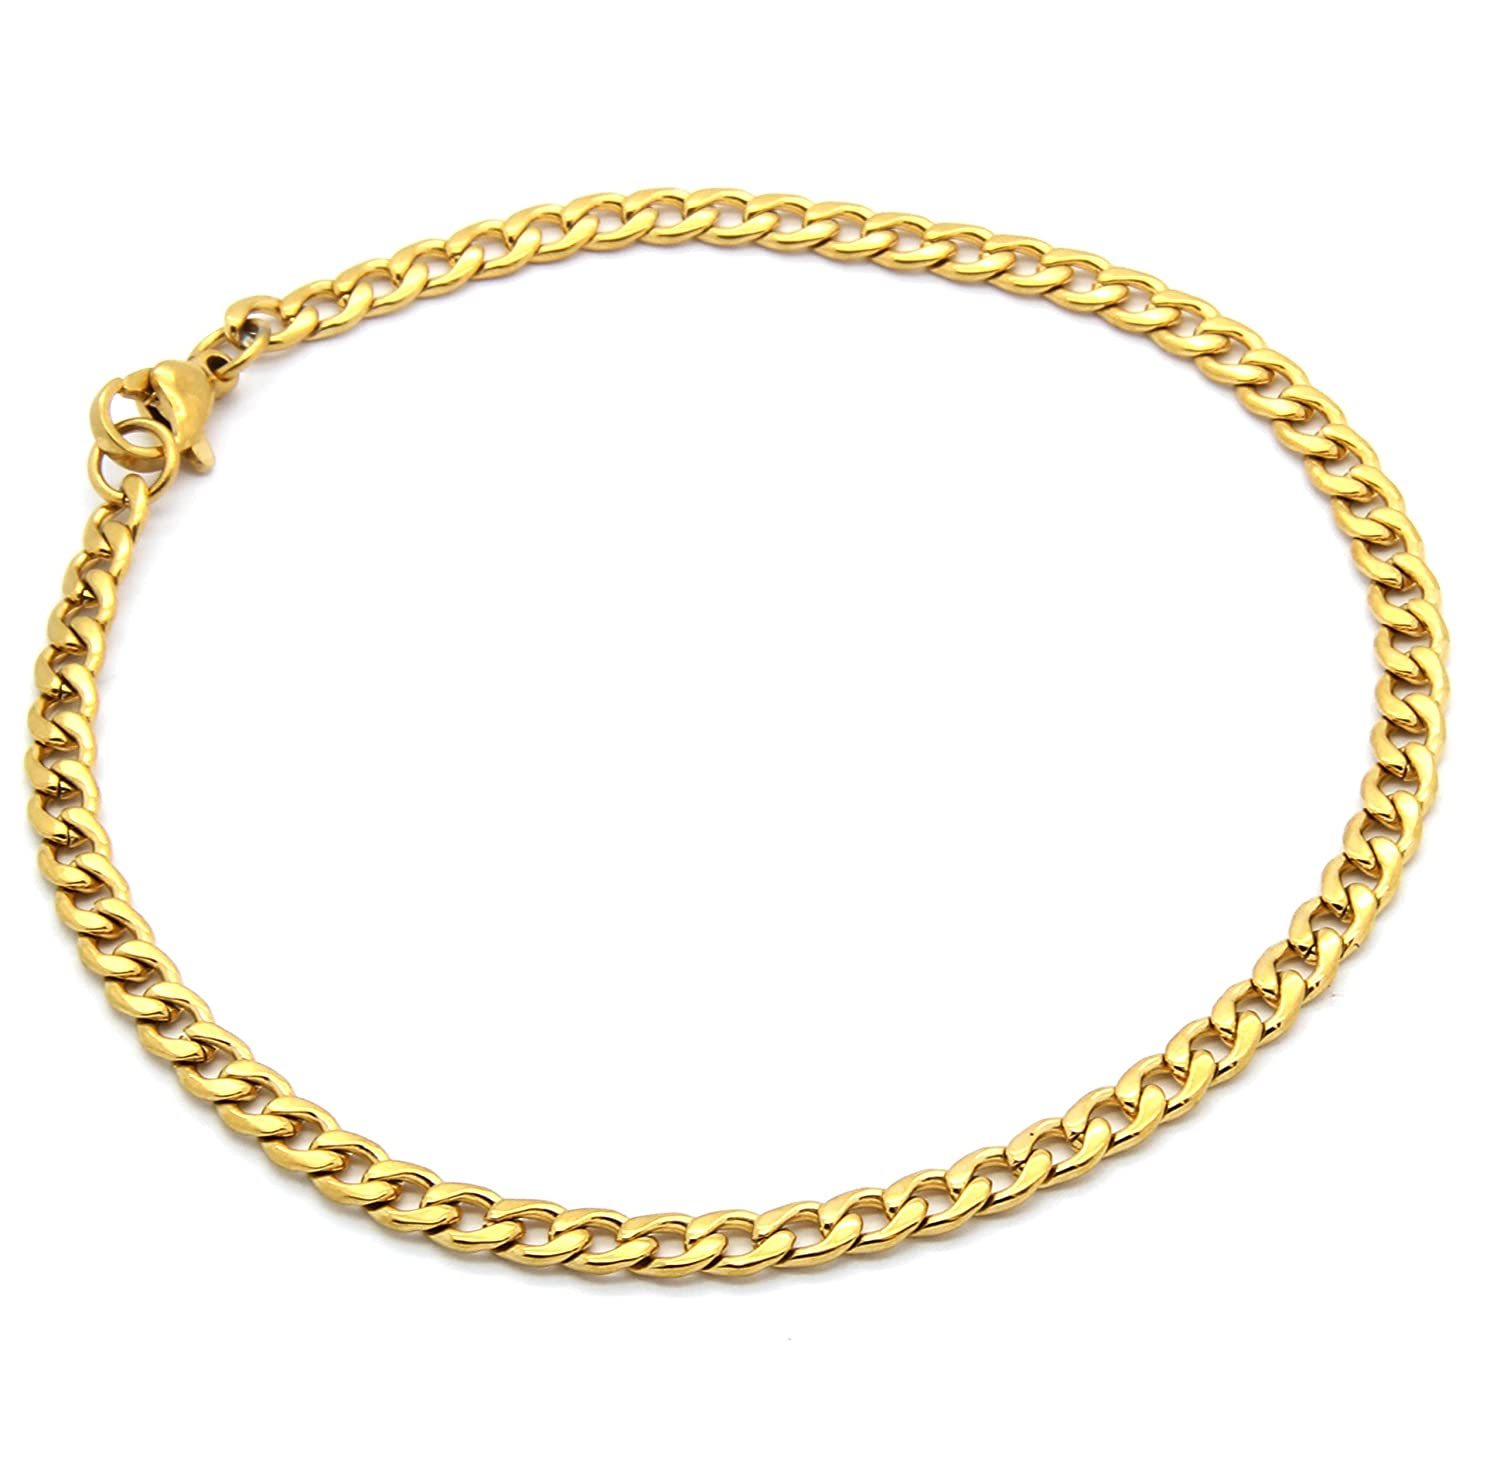 "Mens Gold Tone Stainless Steel 4mm 9"" Inch Cuban Hip Hop Bracelet"